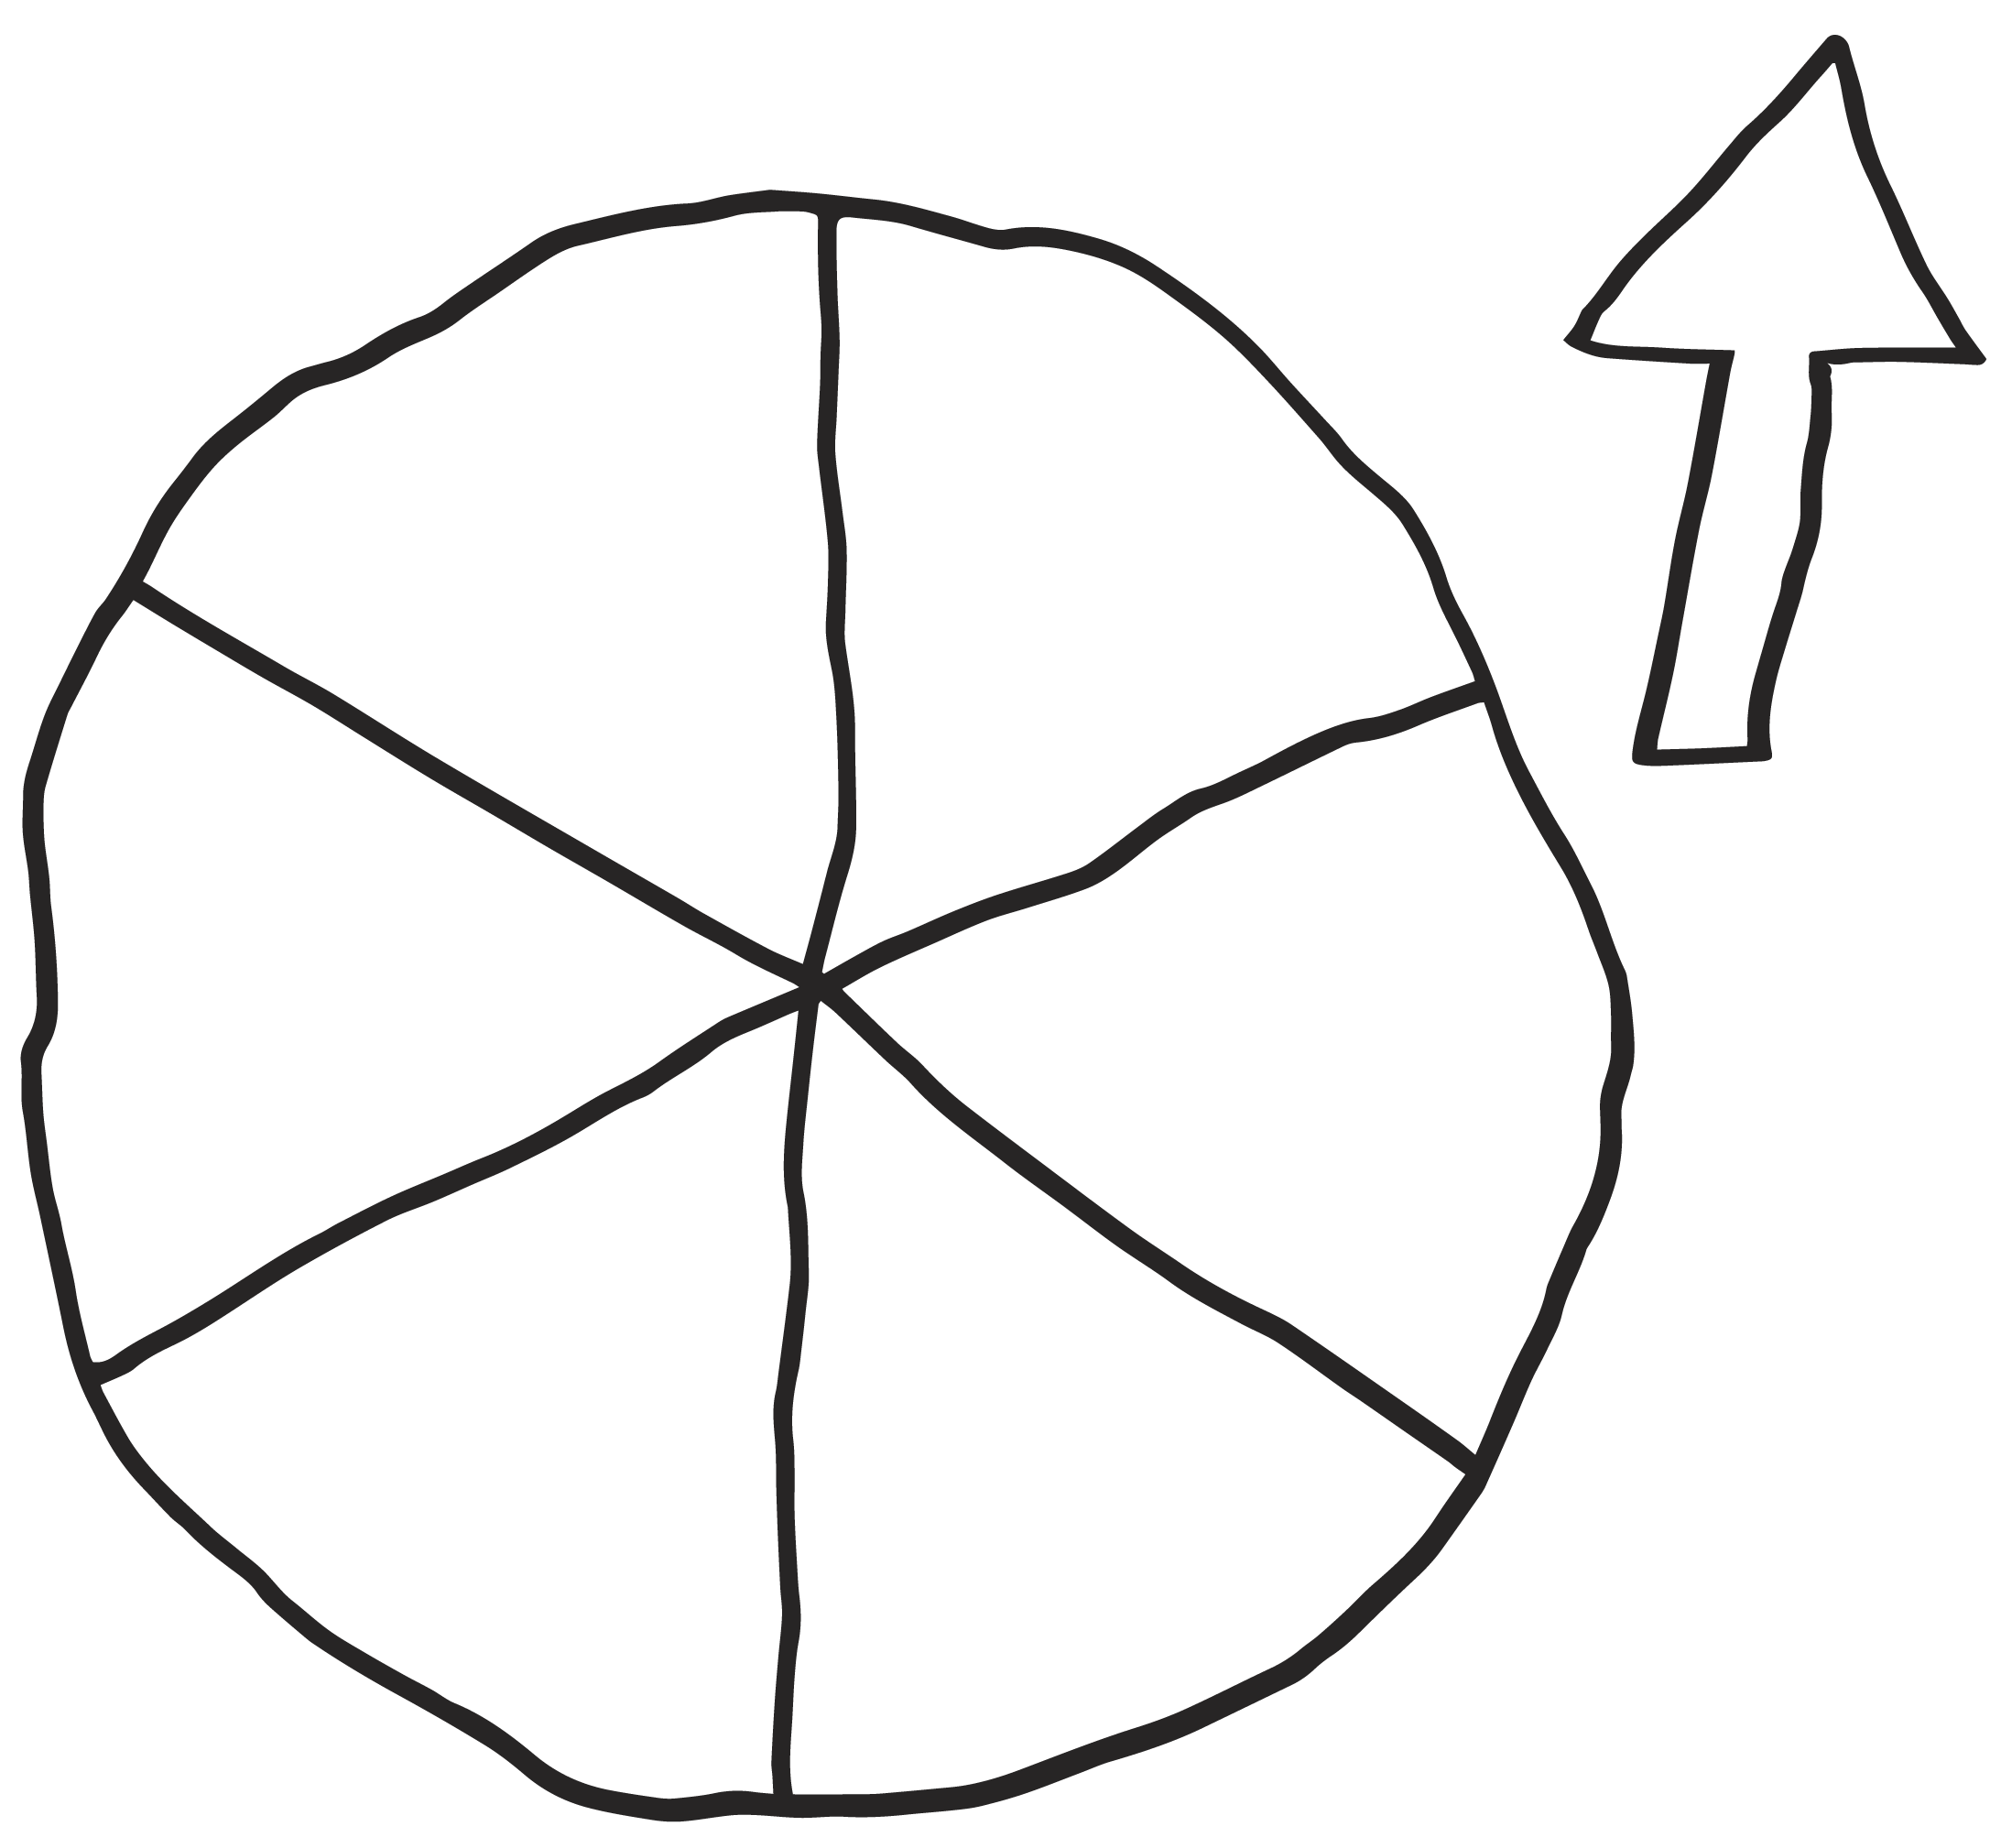 Wheel Template with Arrow